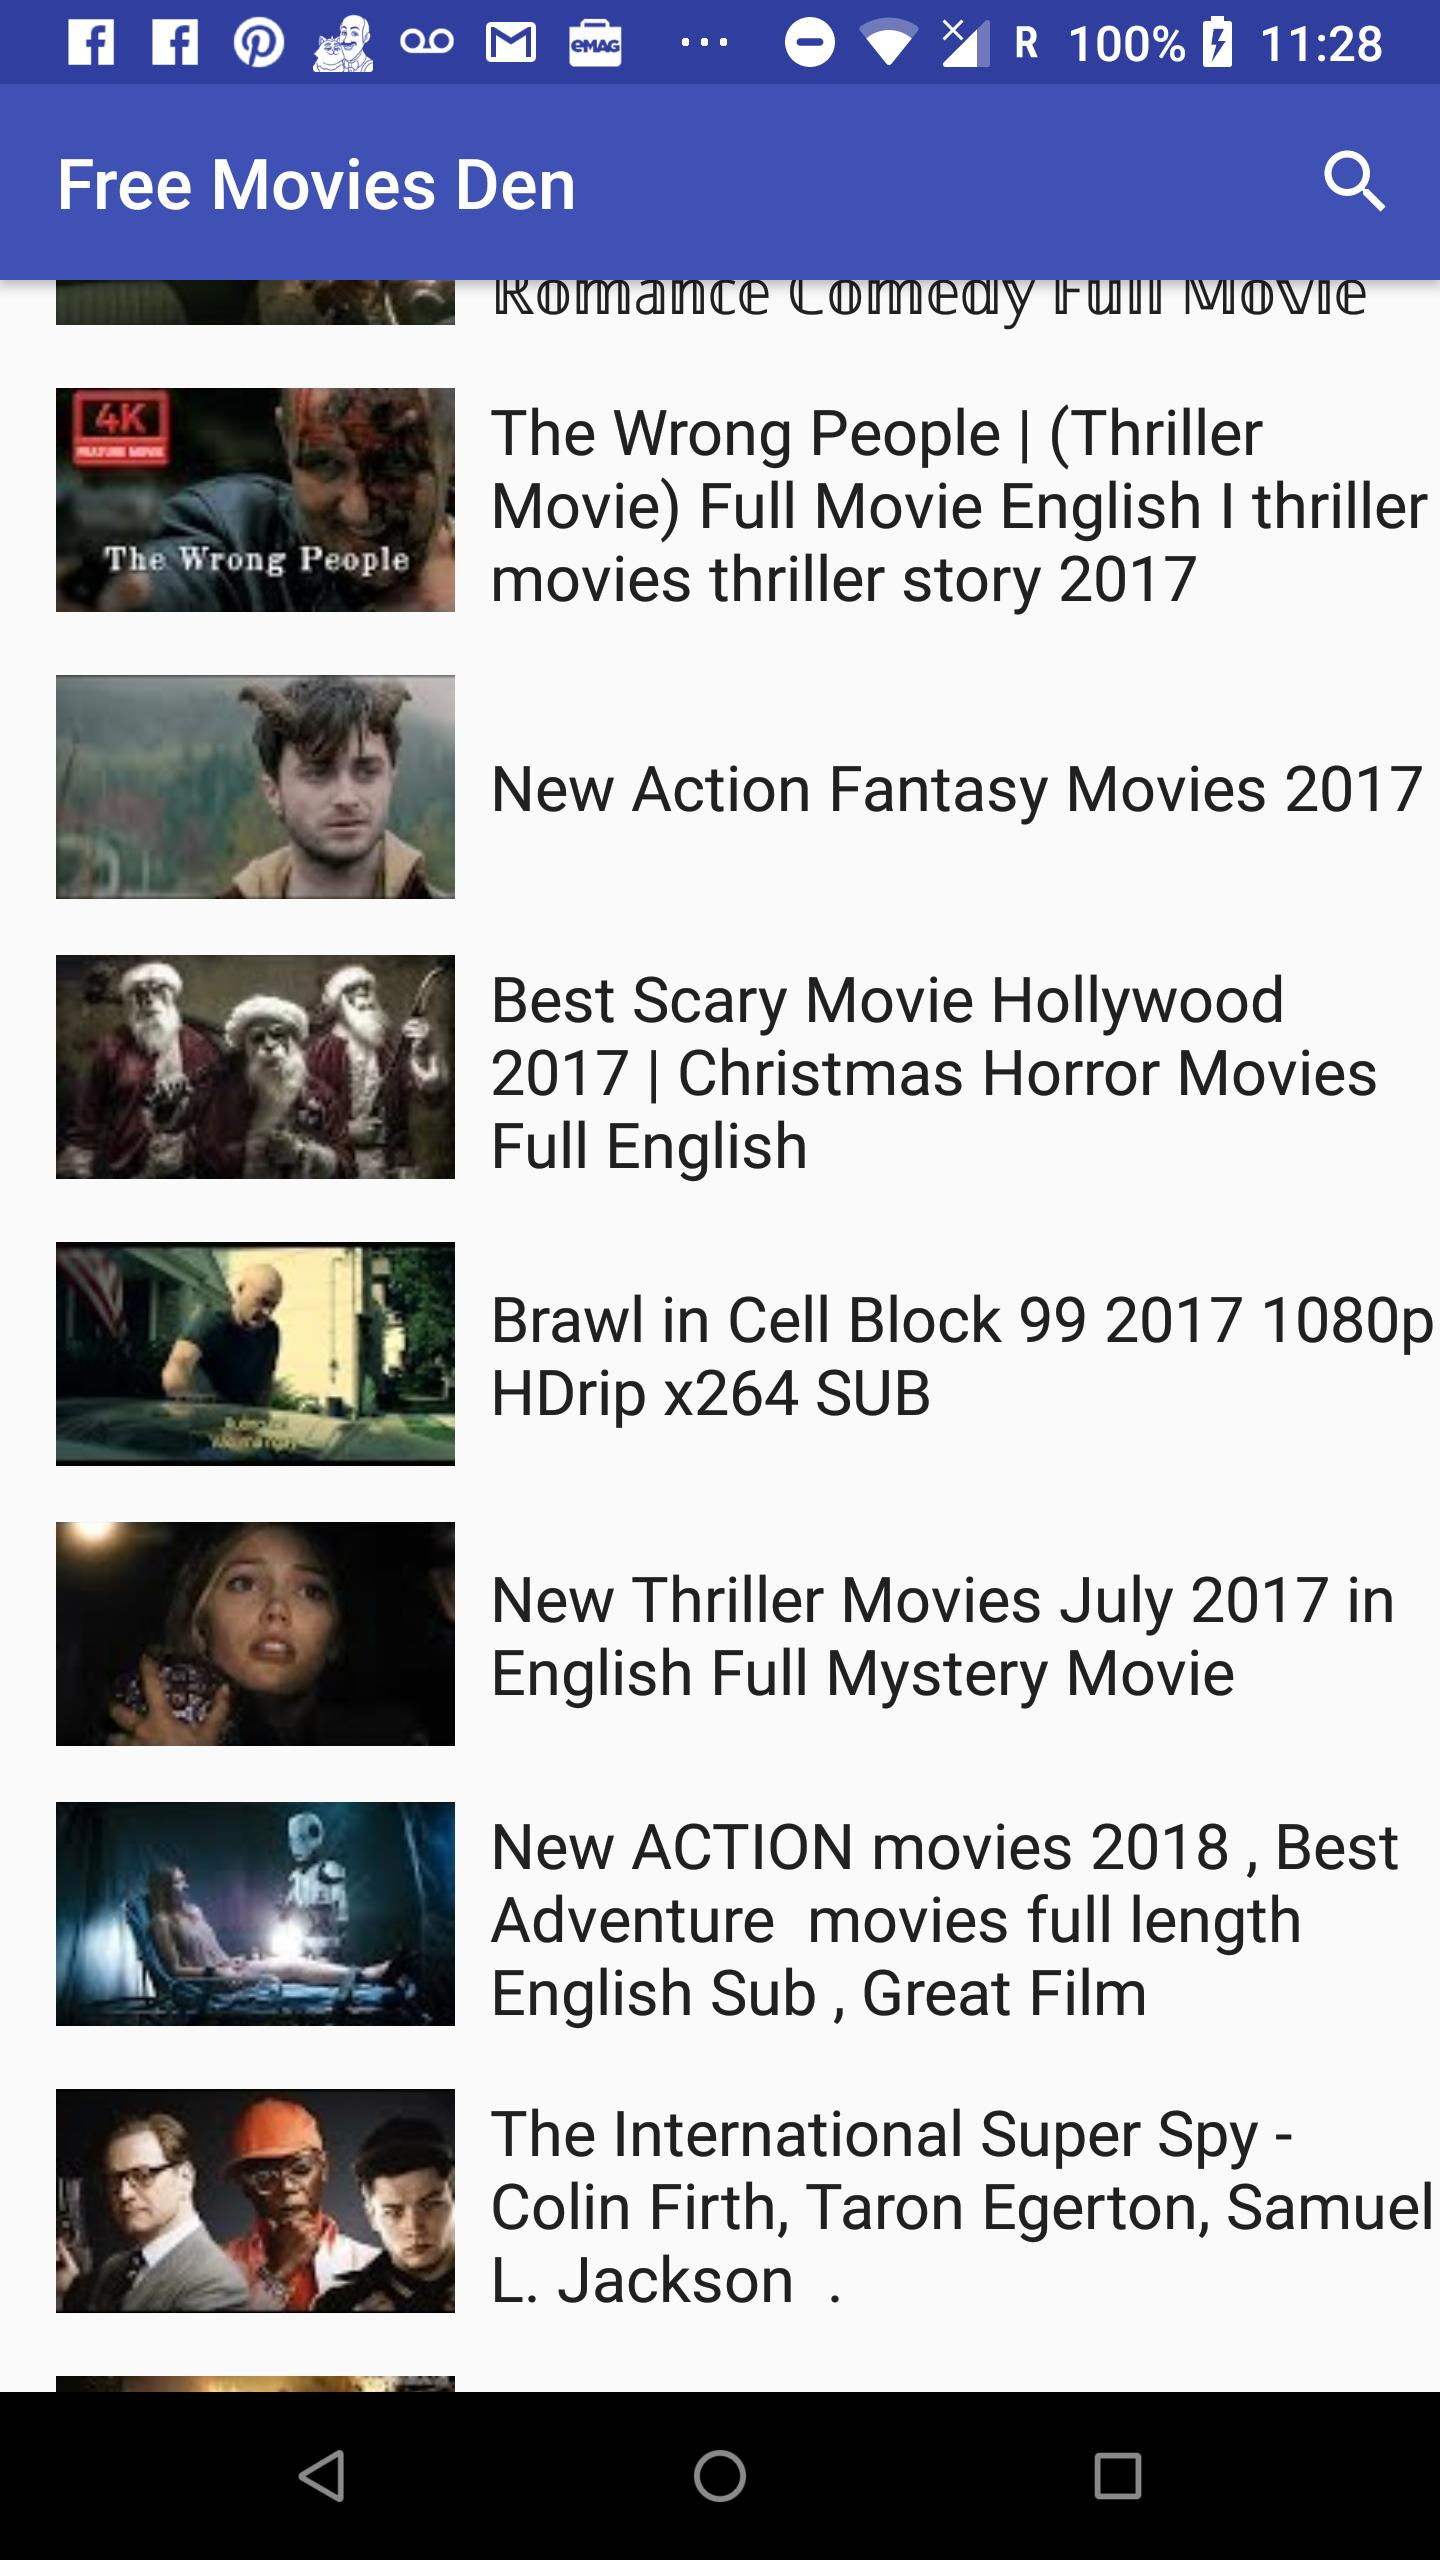 Free Movies Den for Android - APK Download